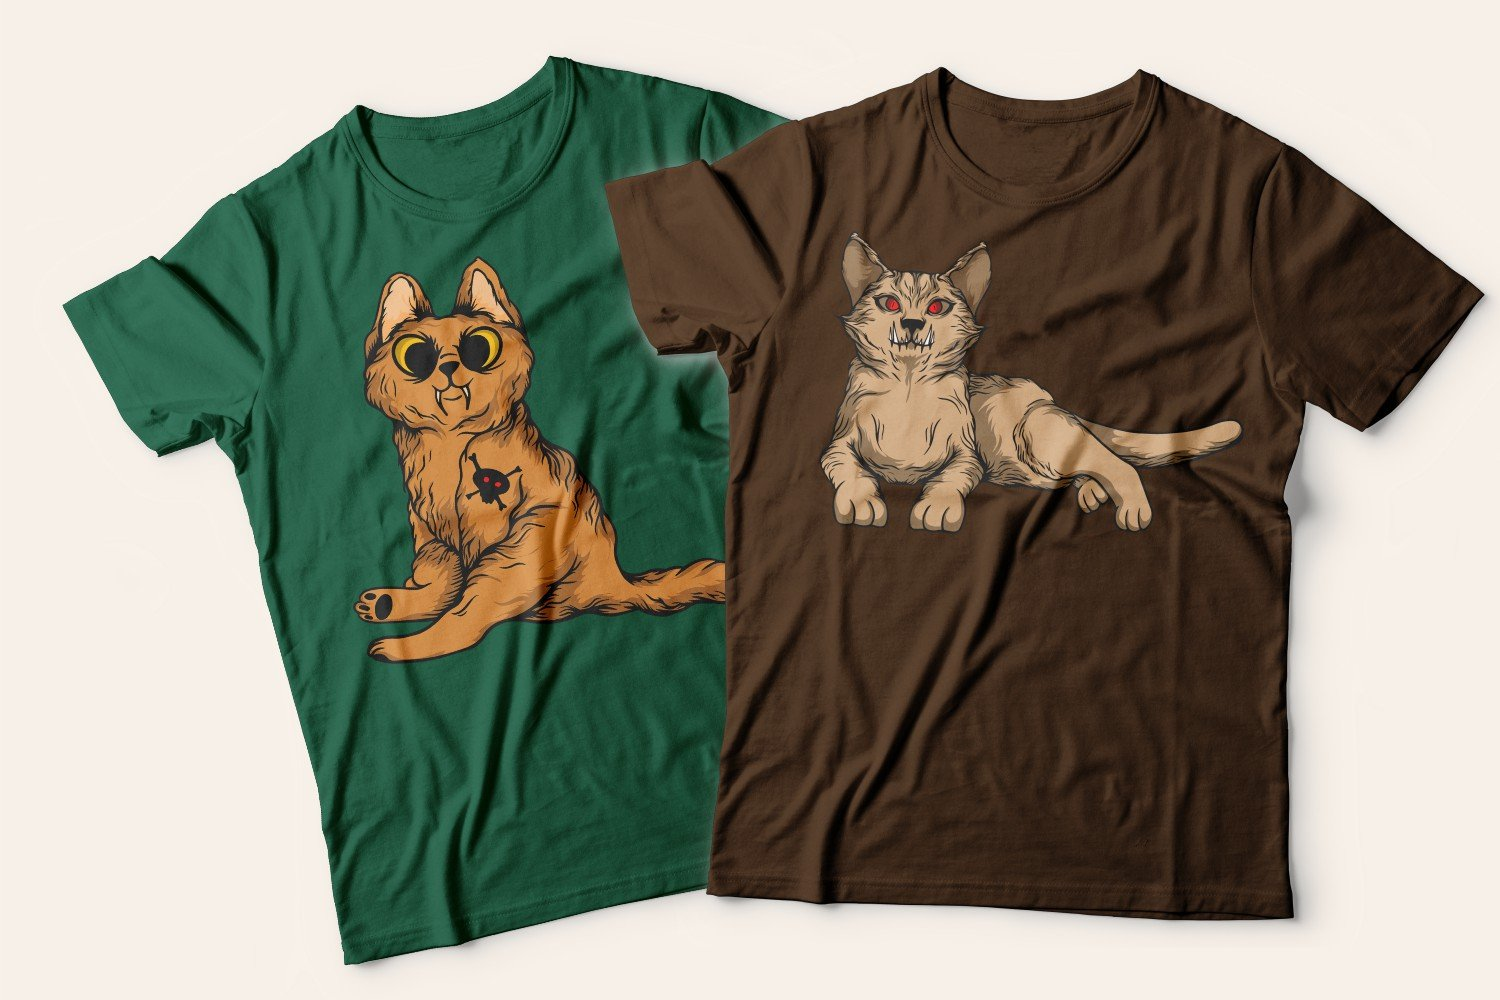 Two T-shirts with cats: one green with a playful beige kitten, the other brown with a calm beige cat.